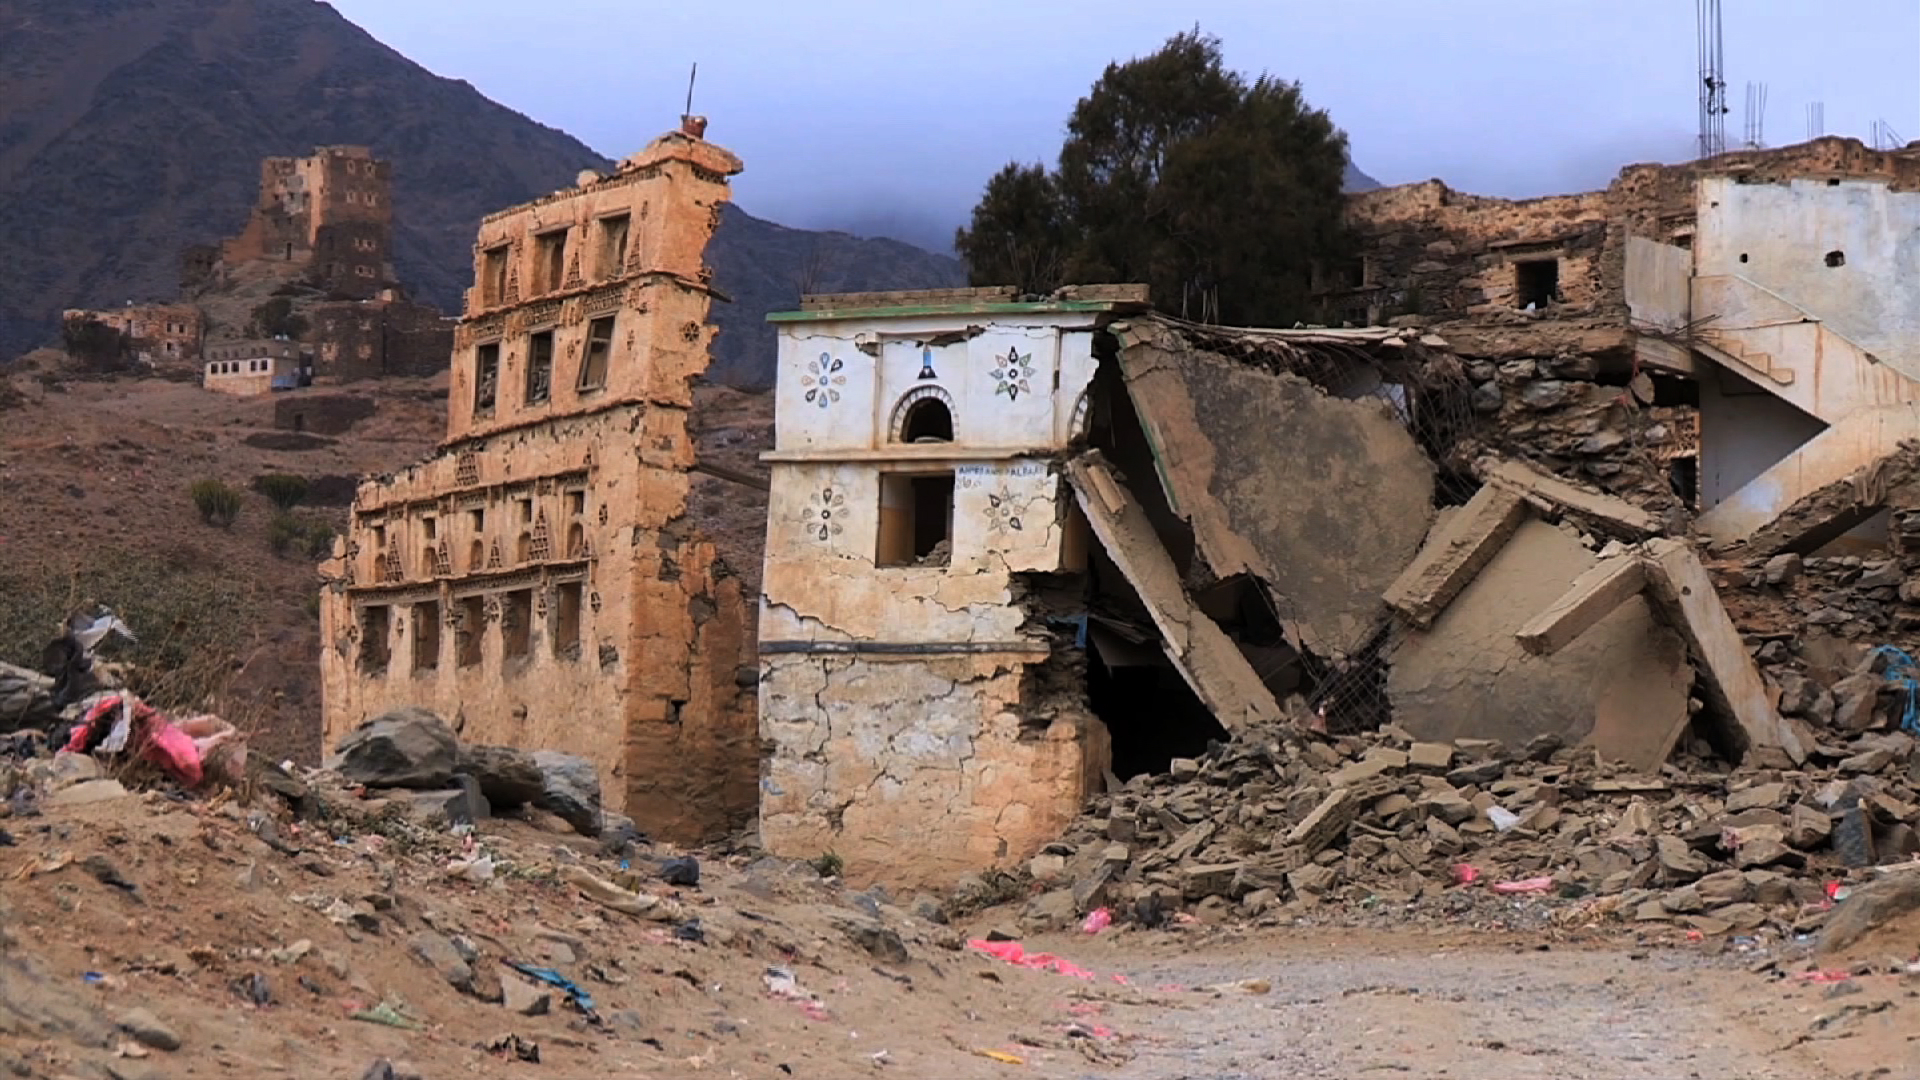 Destruction in northern Yemen caused by the civil wars with the Houthis, 2004-10